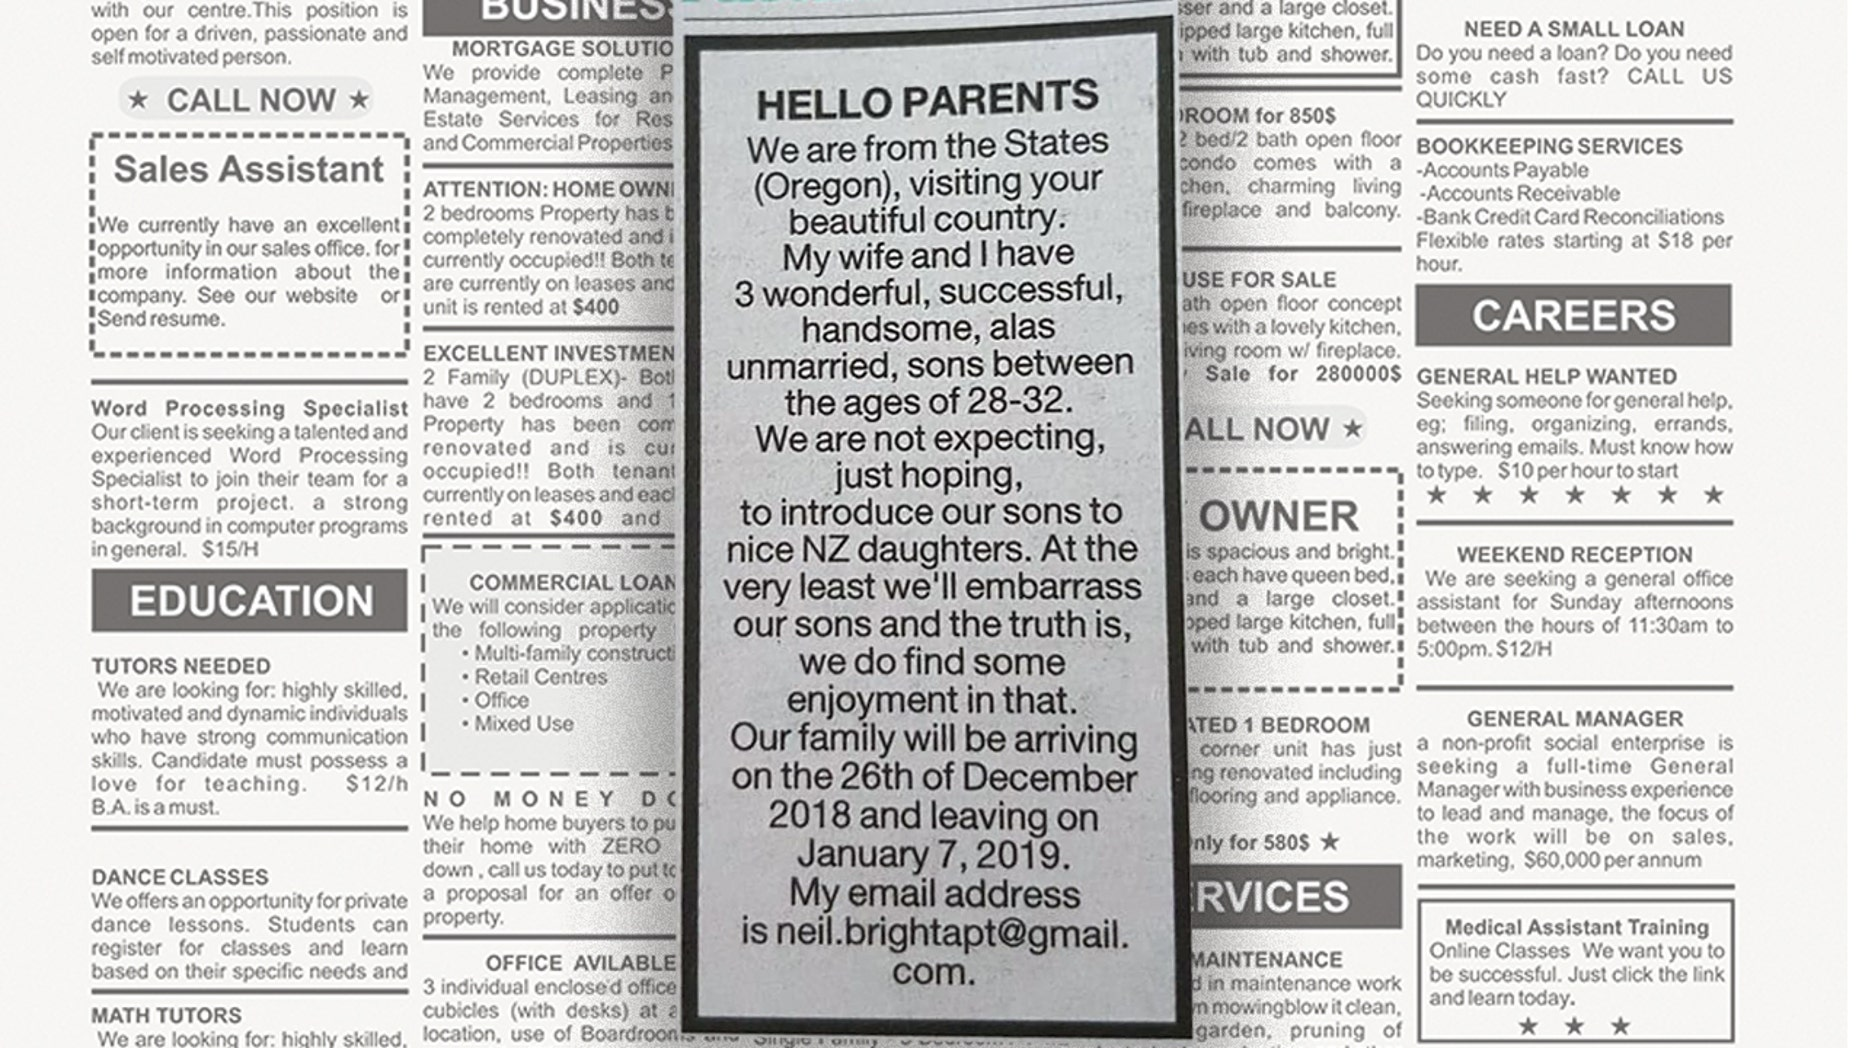 Earlier this week, an Oregon man named Neil placed a classified ad in the New Zealand Herald pursuing blind dates for his three sons during their upcoming vacation.